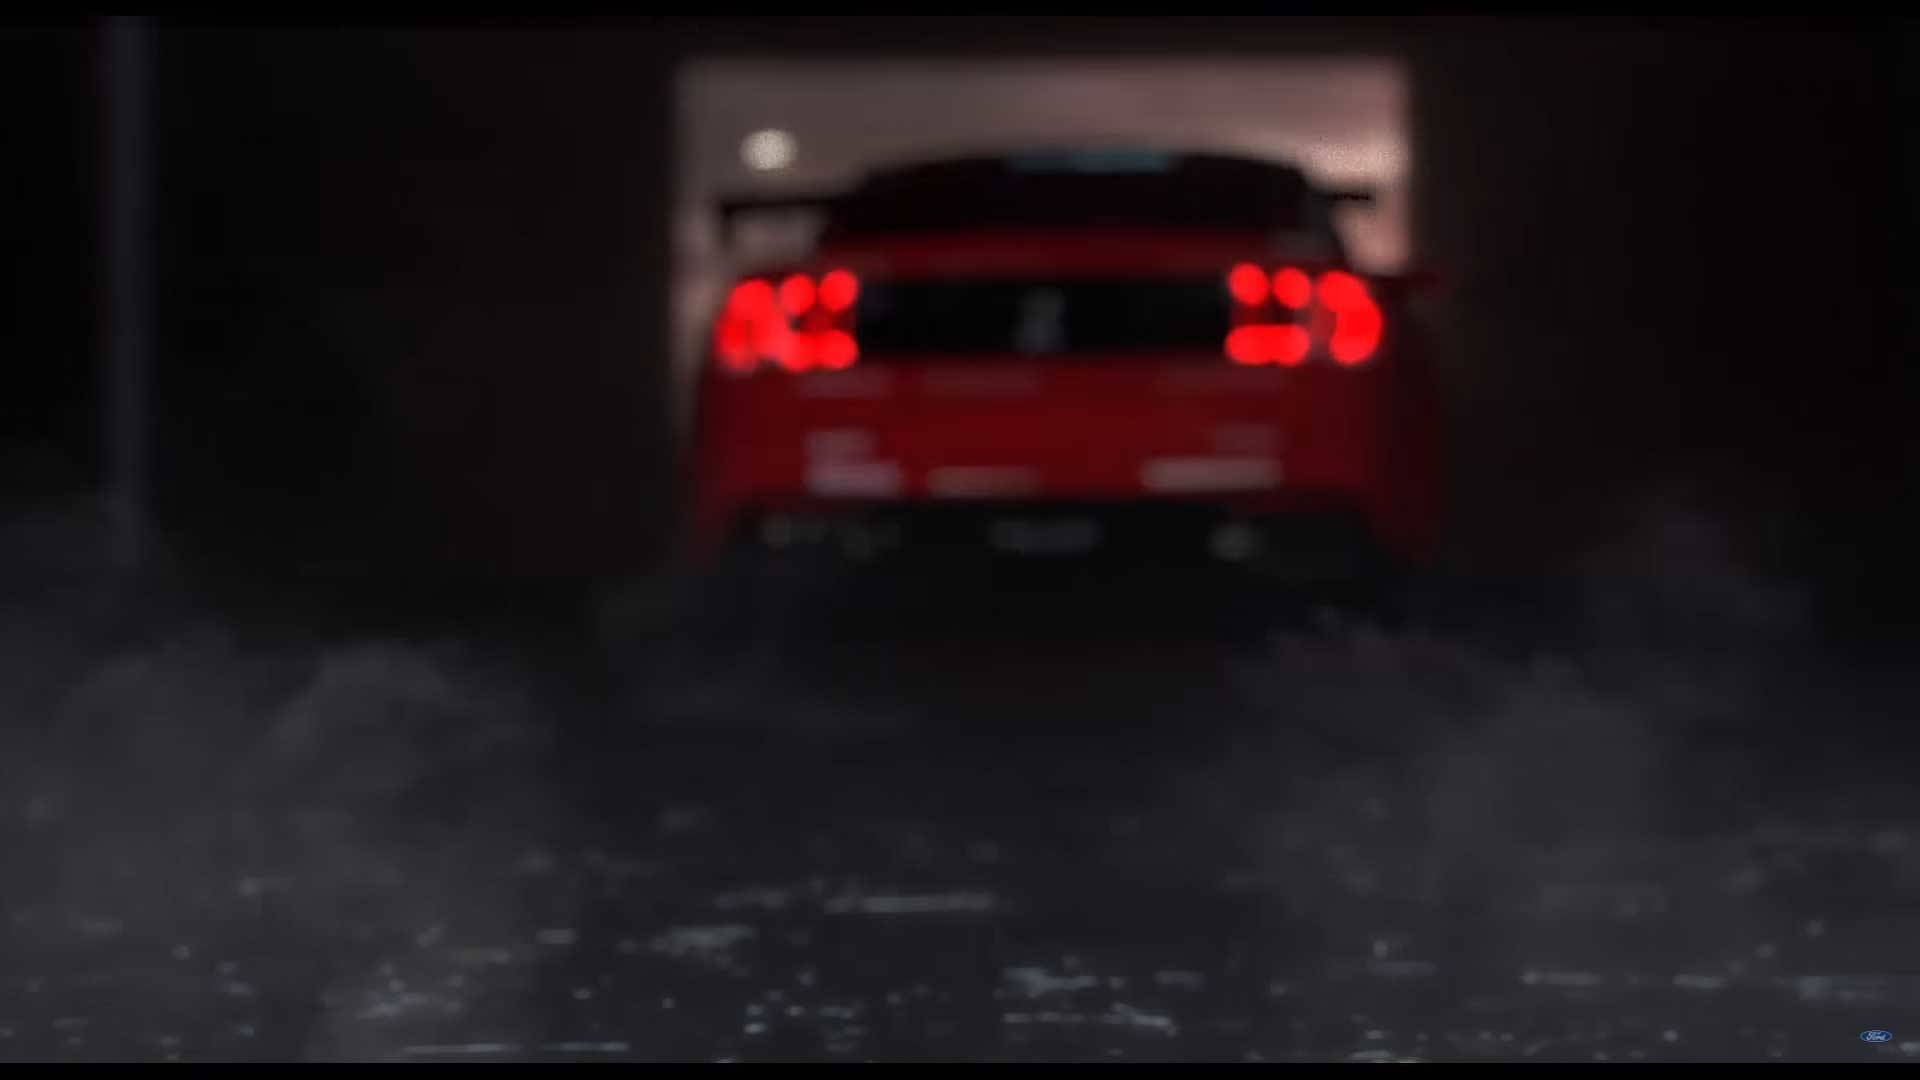 Ford confirms 2019 mustang shelby gt500 with over 700 hp